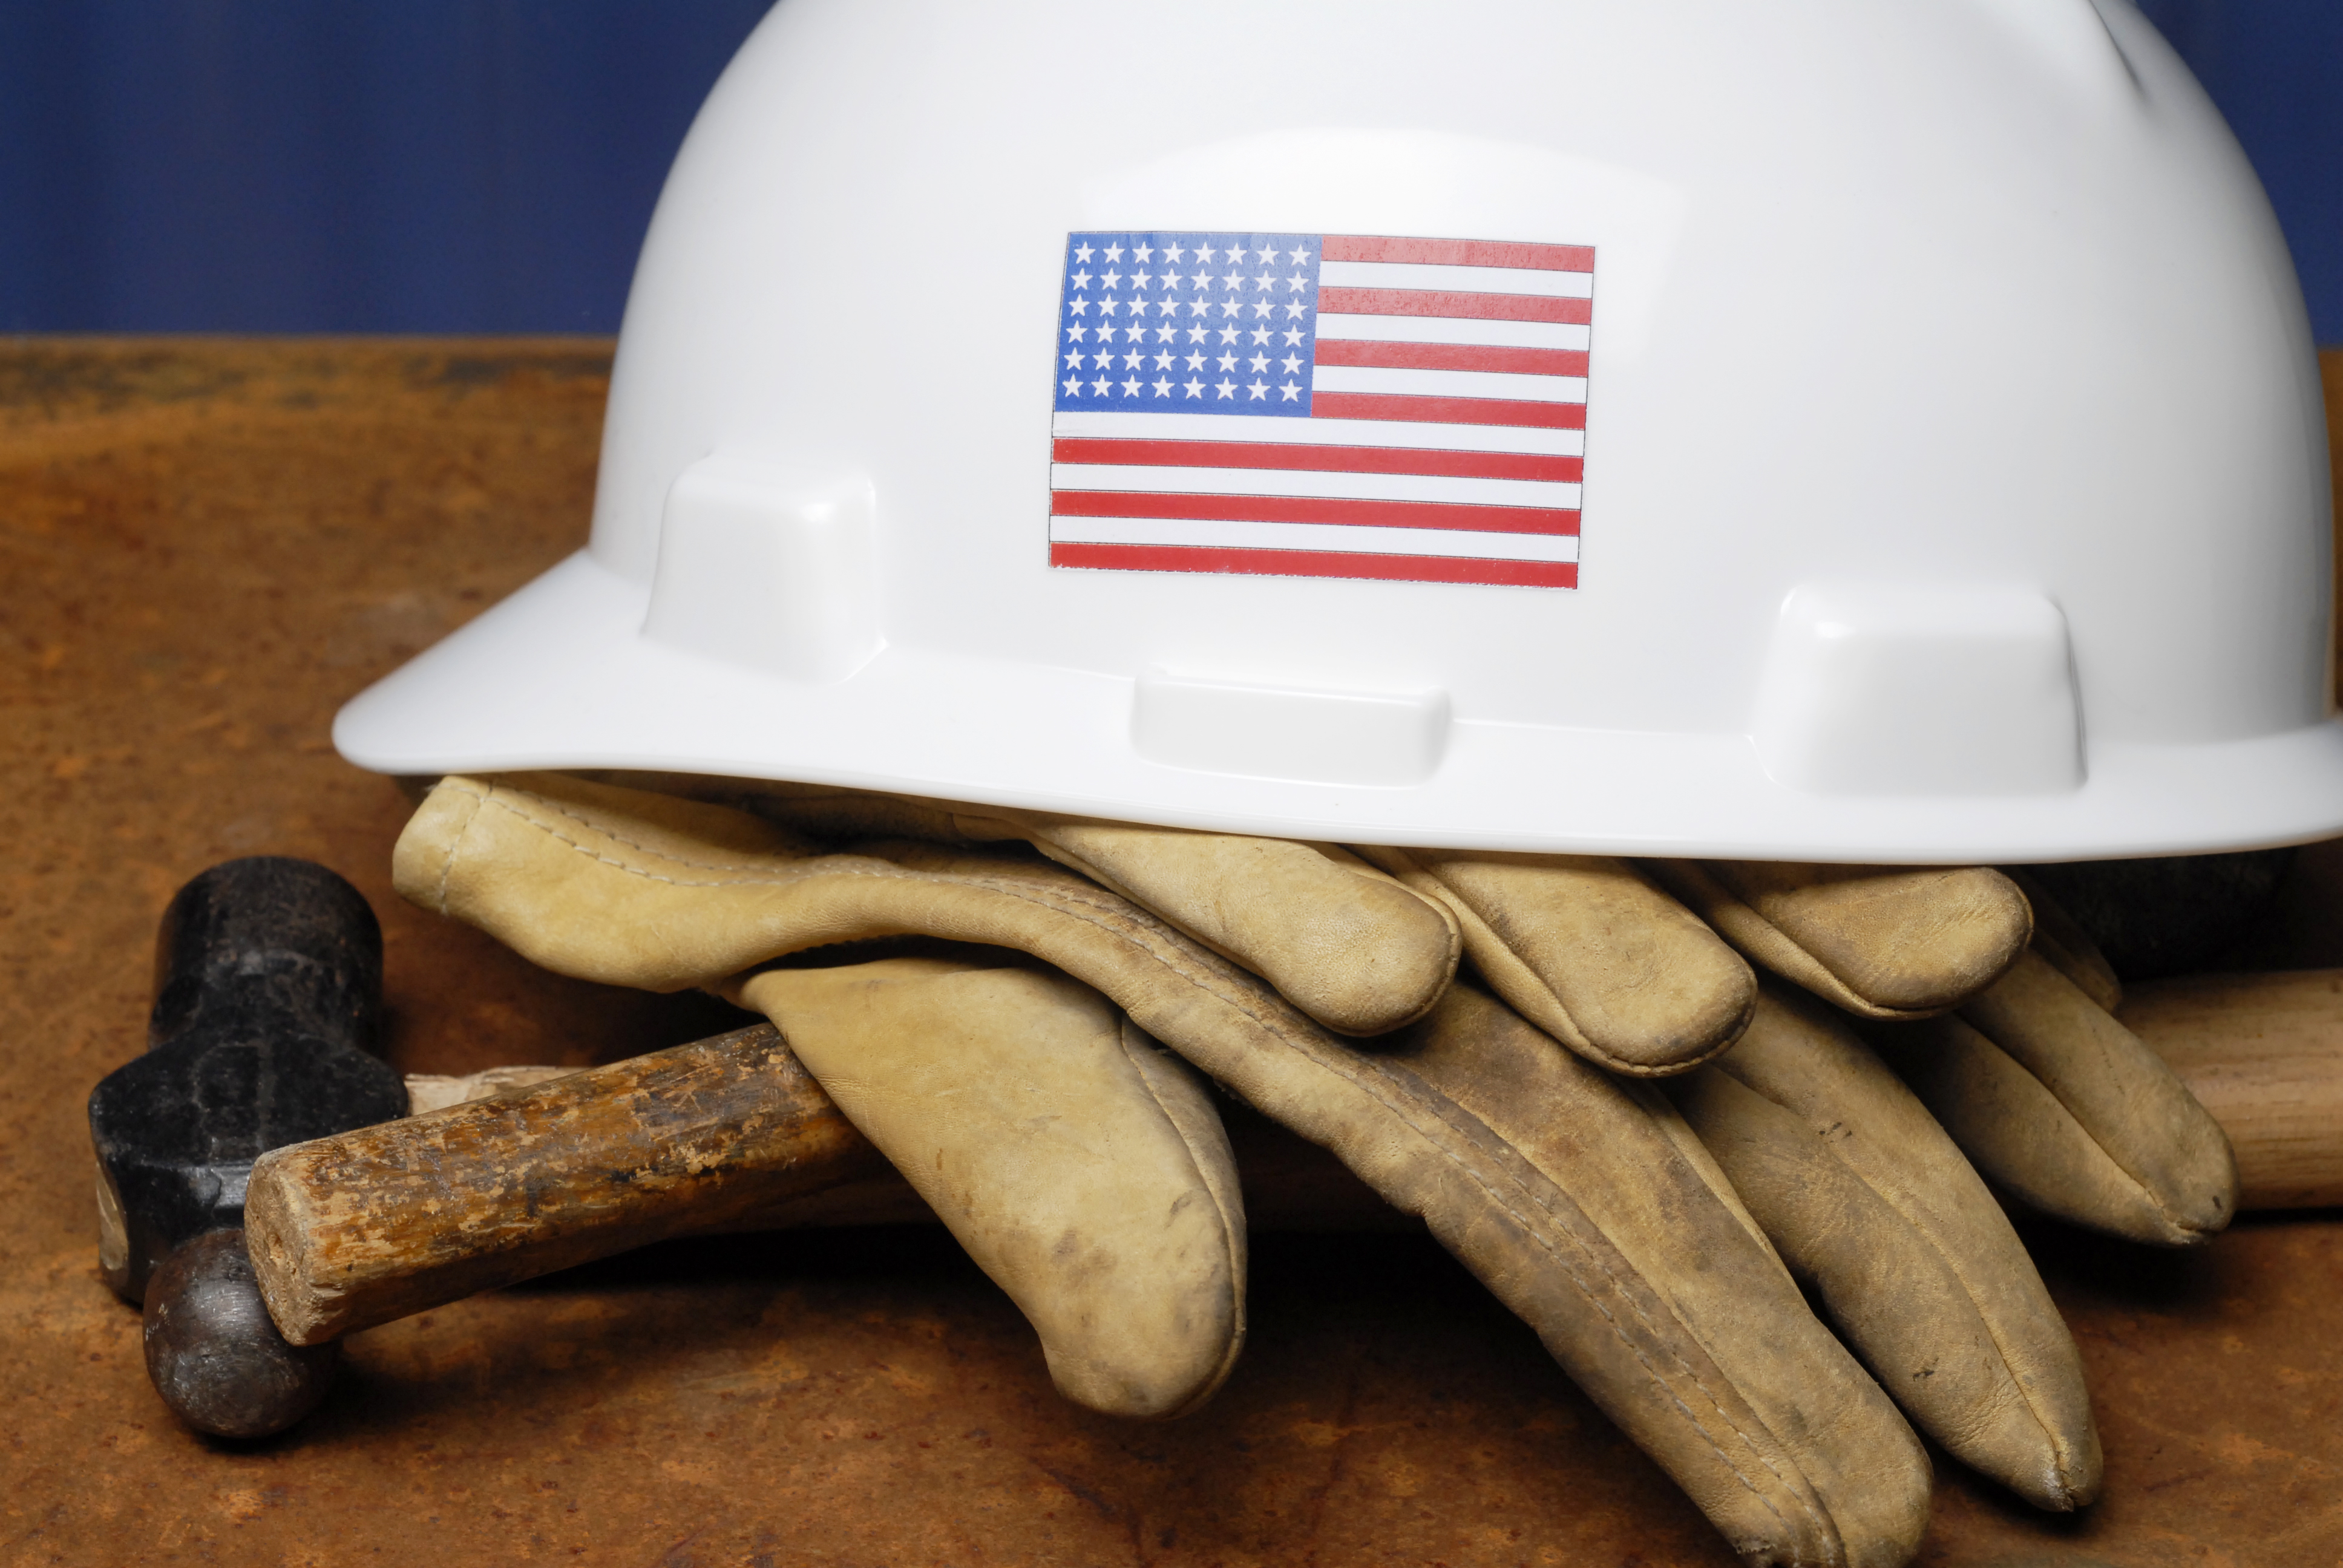 Stock Photograph of hard hat with U.S. flag and gloves.